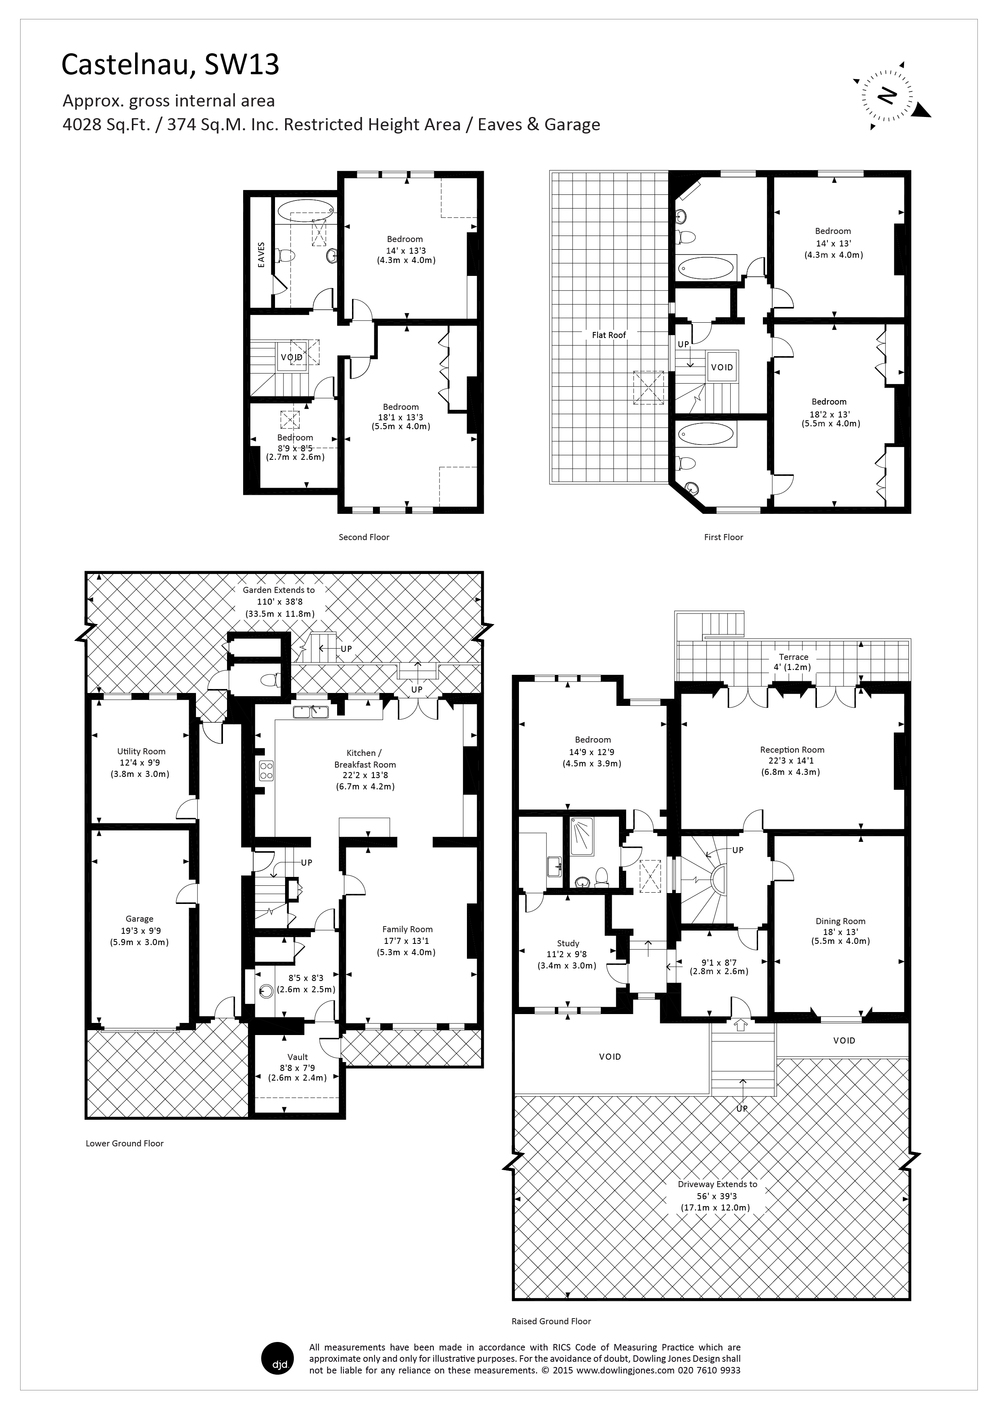 dowling jones castelnau floor plan